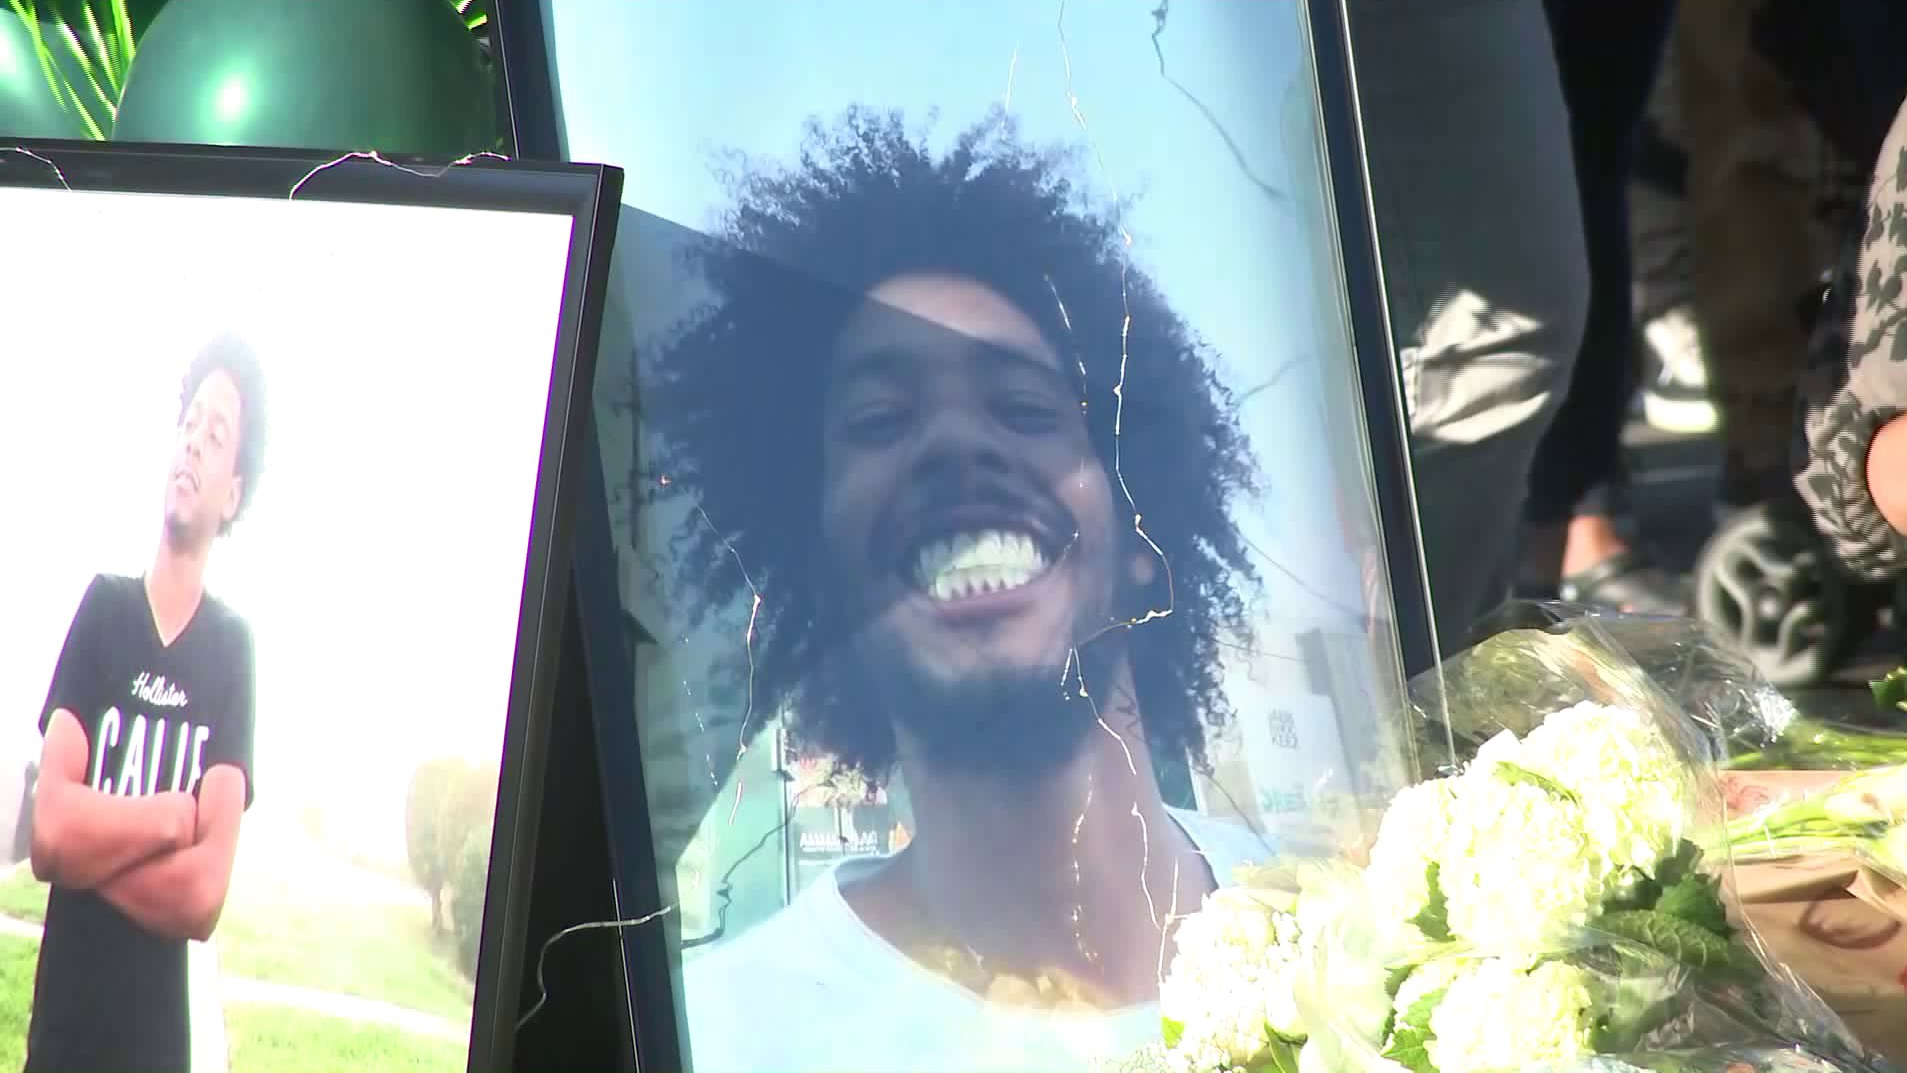 Photos of Jakeil Reynolds are displayed at a vigil held July 24, 2020, near where he was fatally shot days before in Ladera Heights. (KTLA)